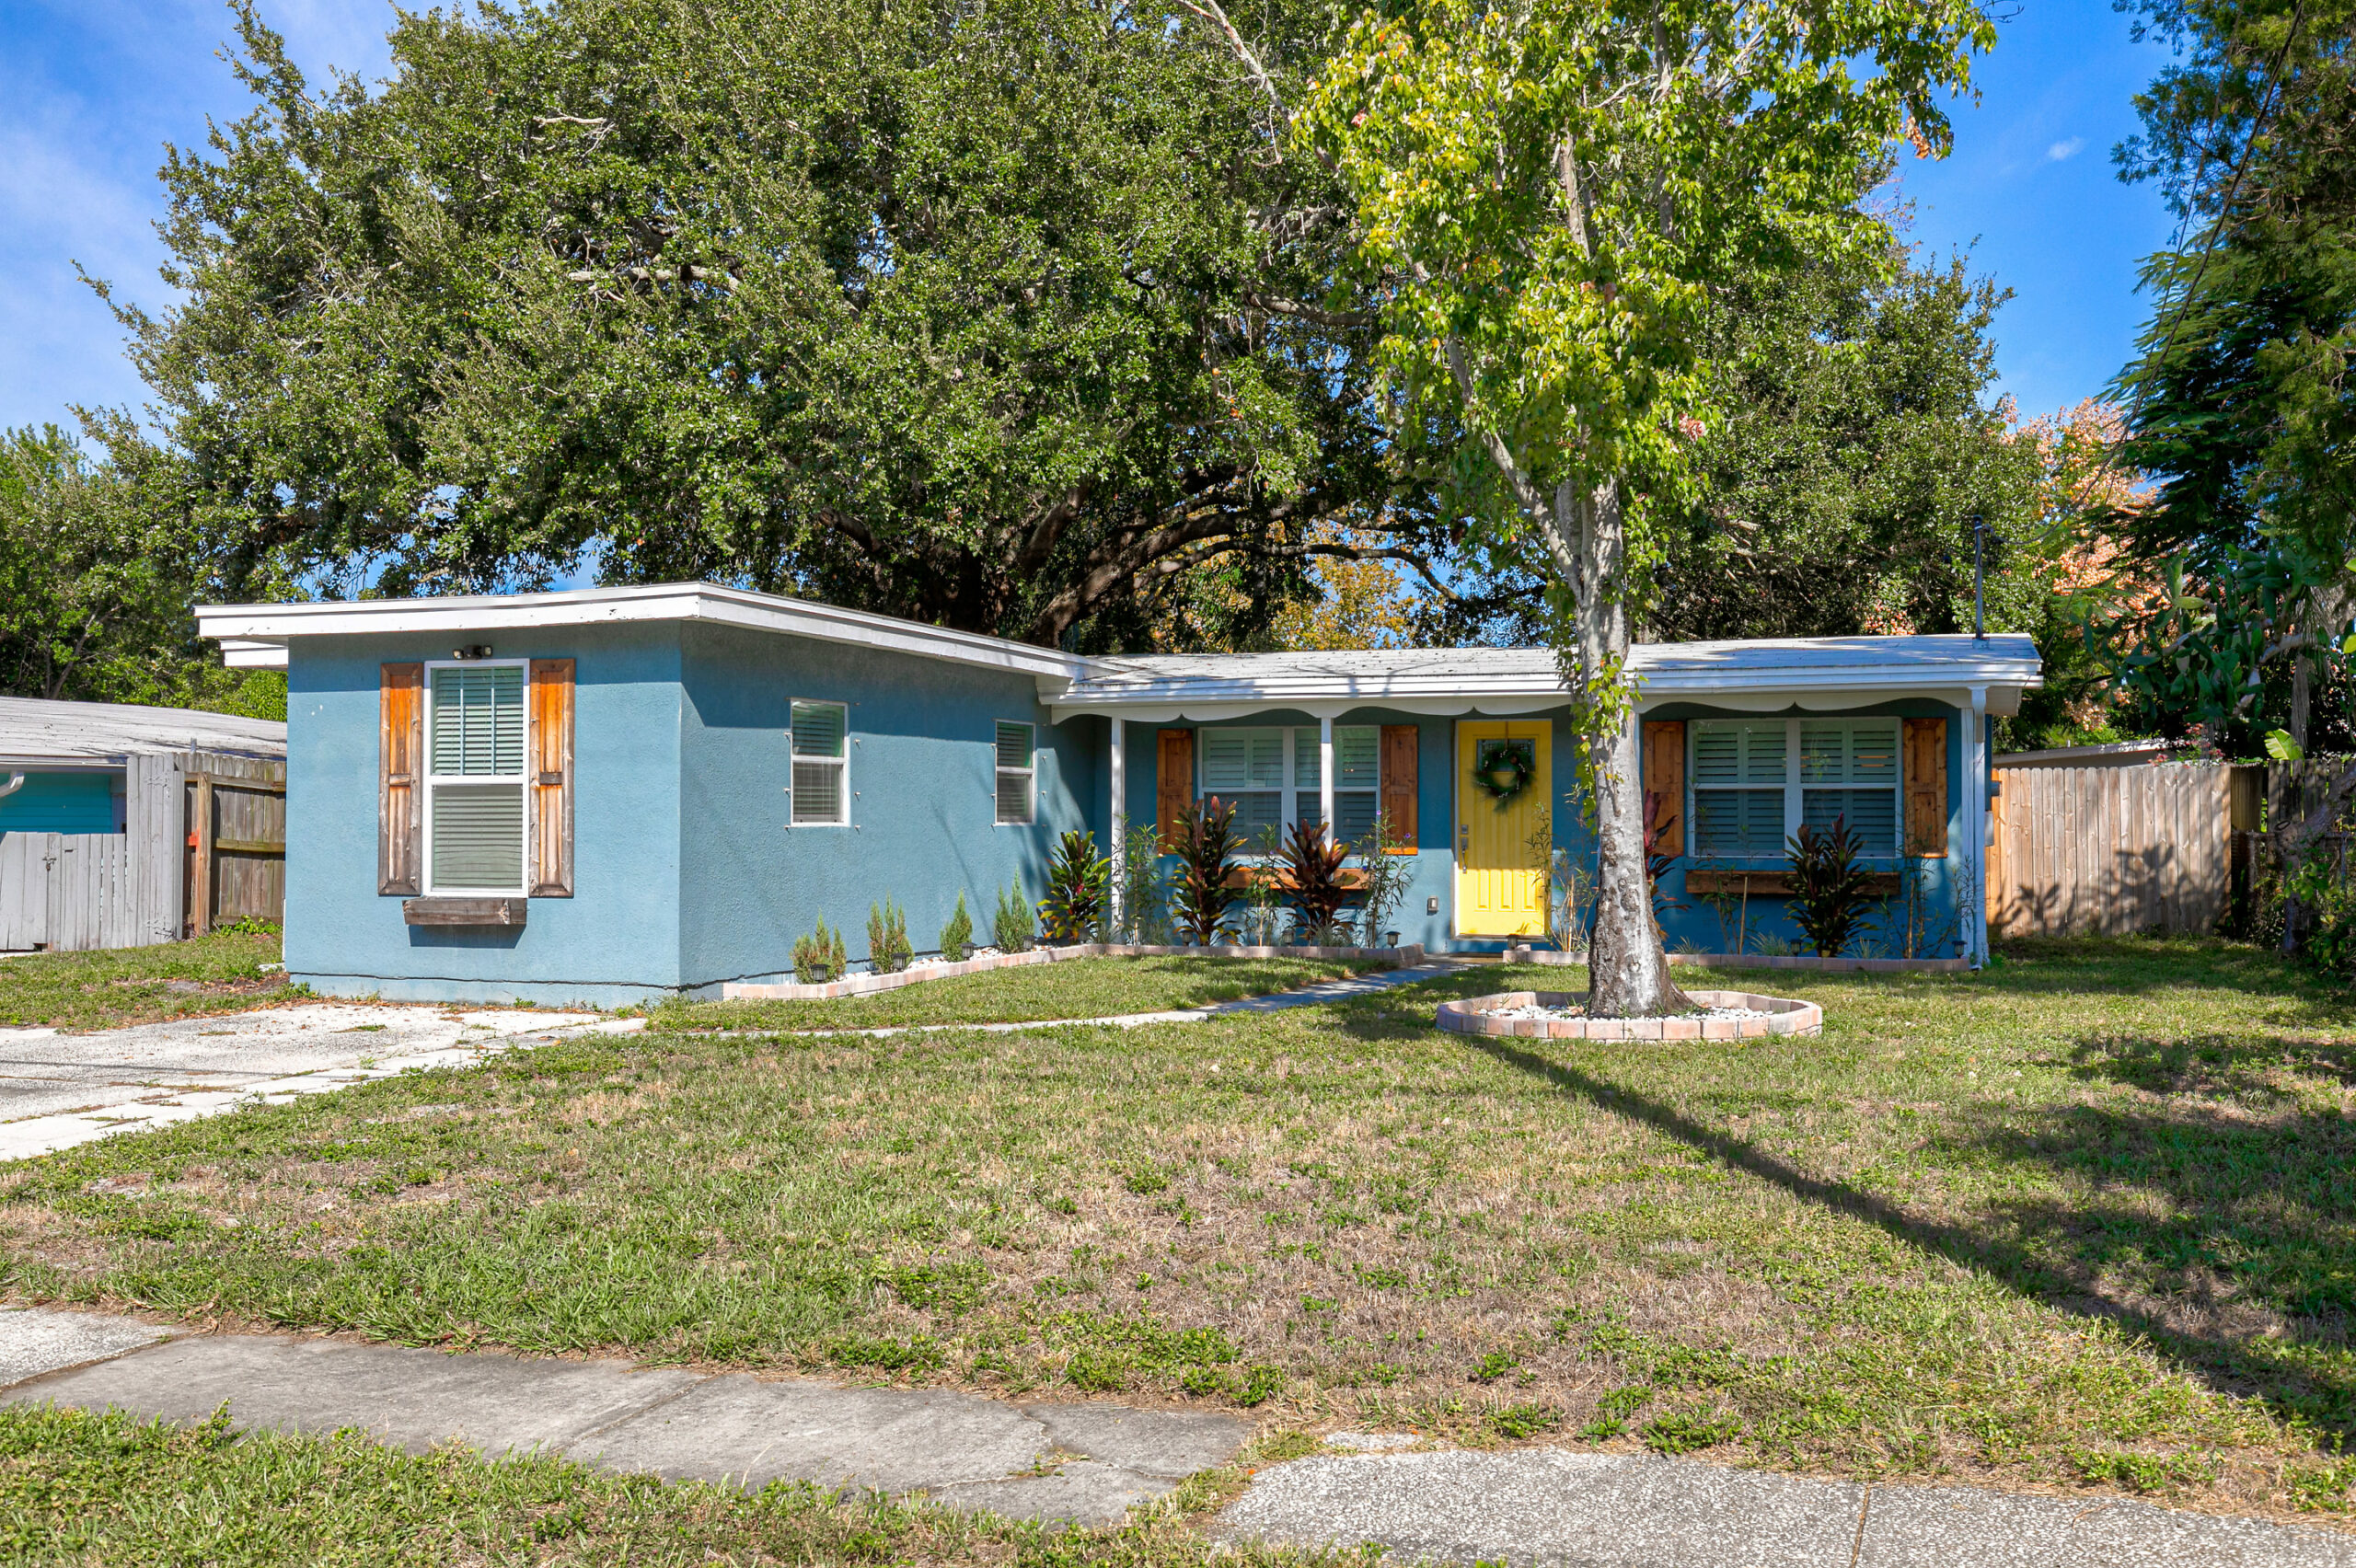 4305-Bay-Ave-Home-fro-Sale-Exterior-South-of-Gandy